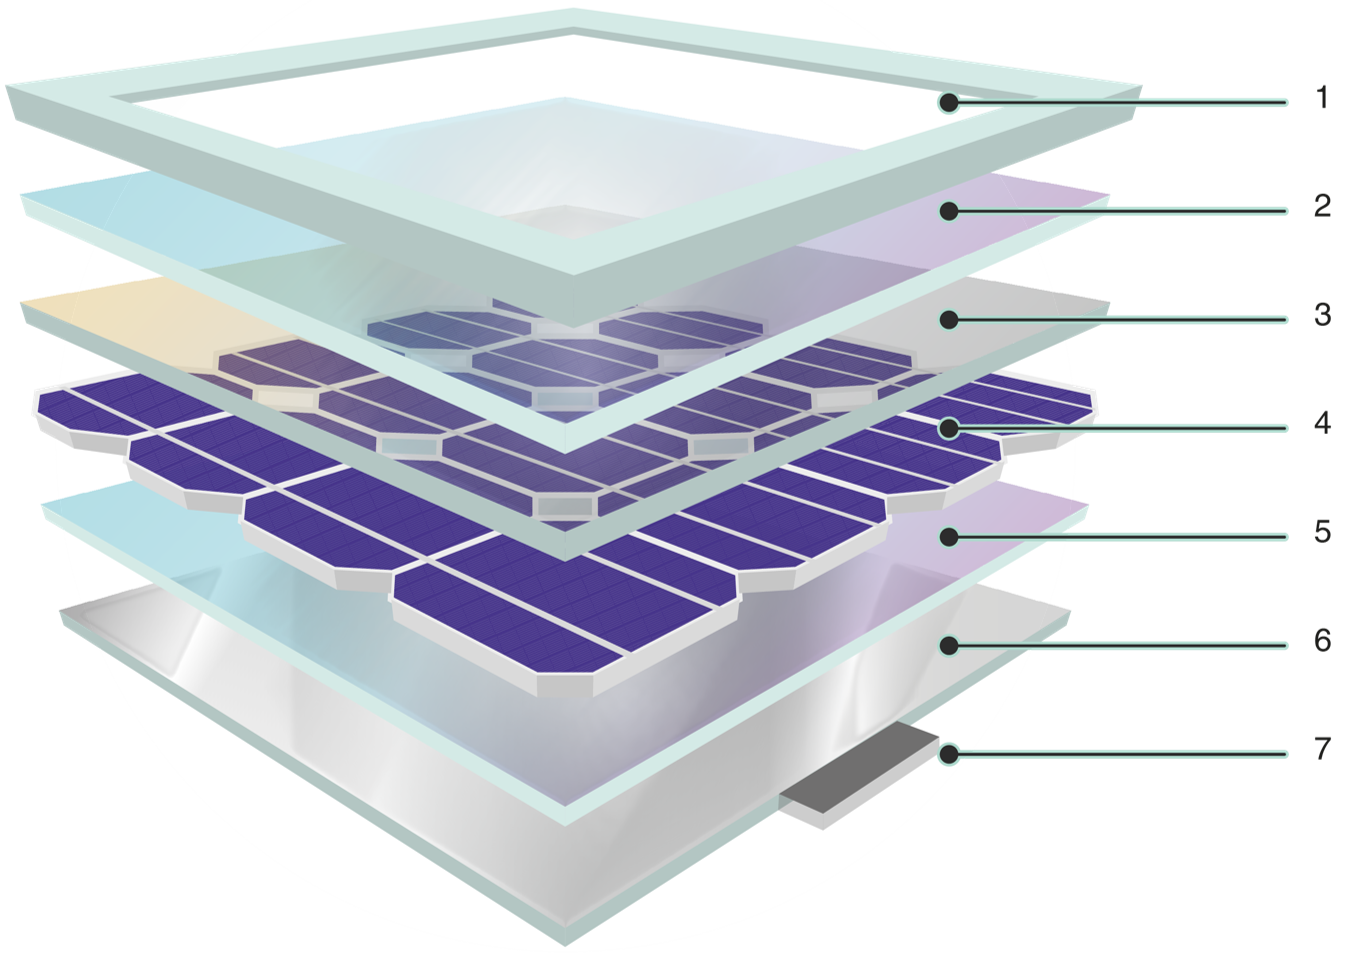 Solar cell layers_numbered